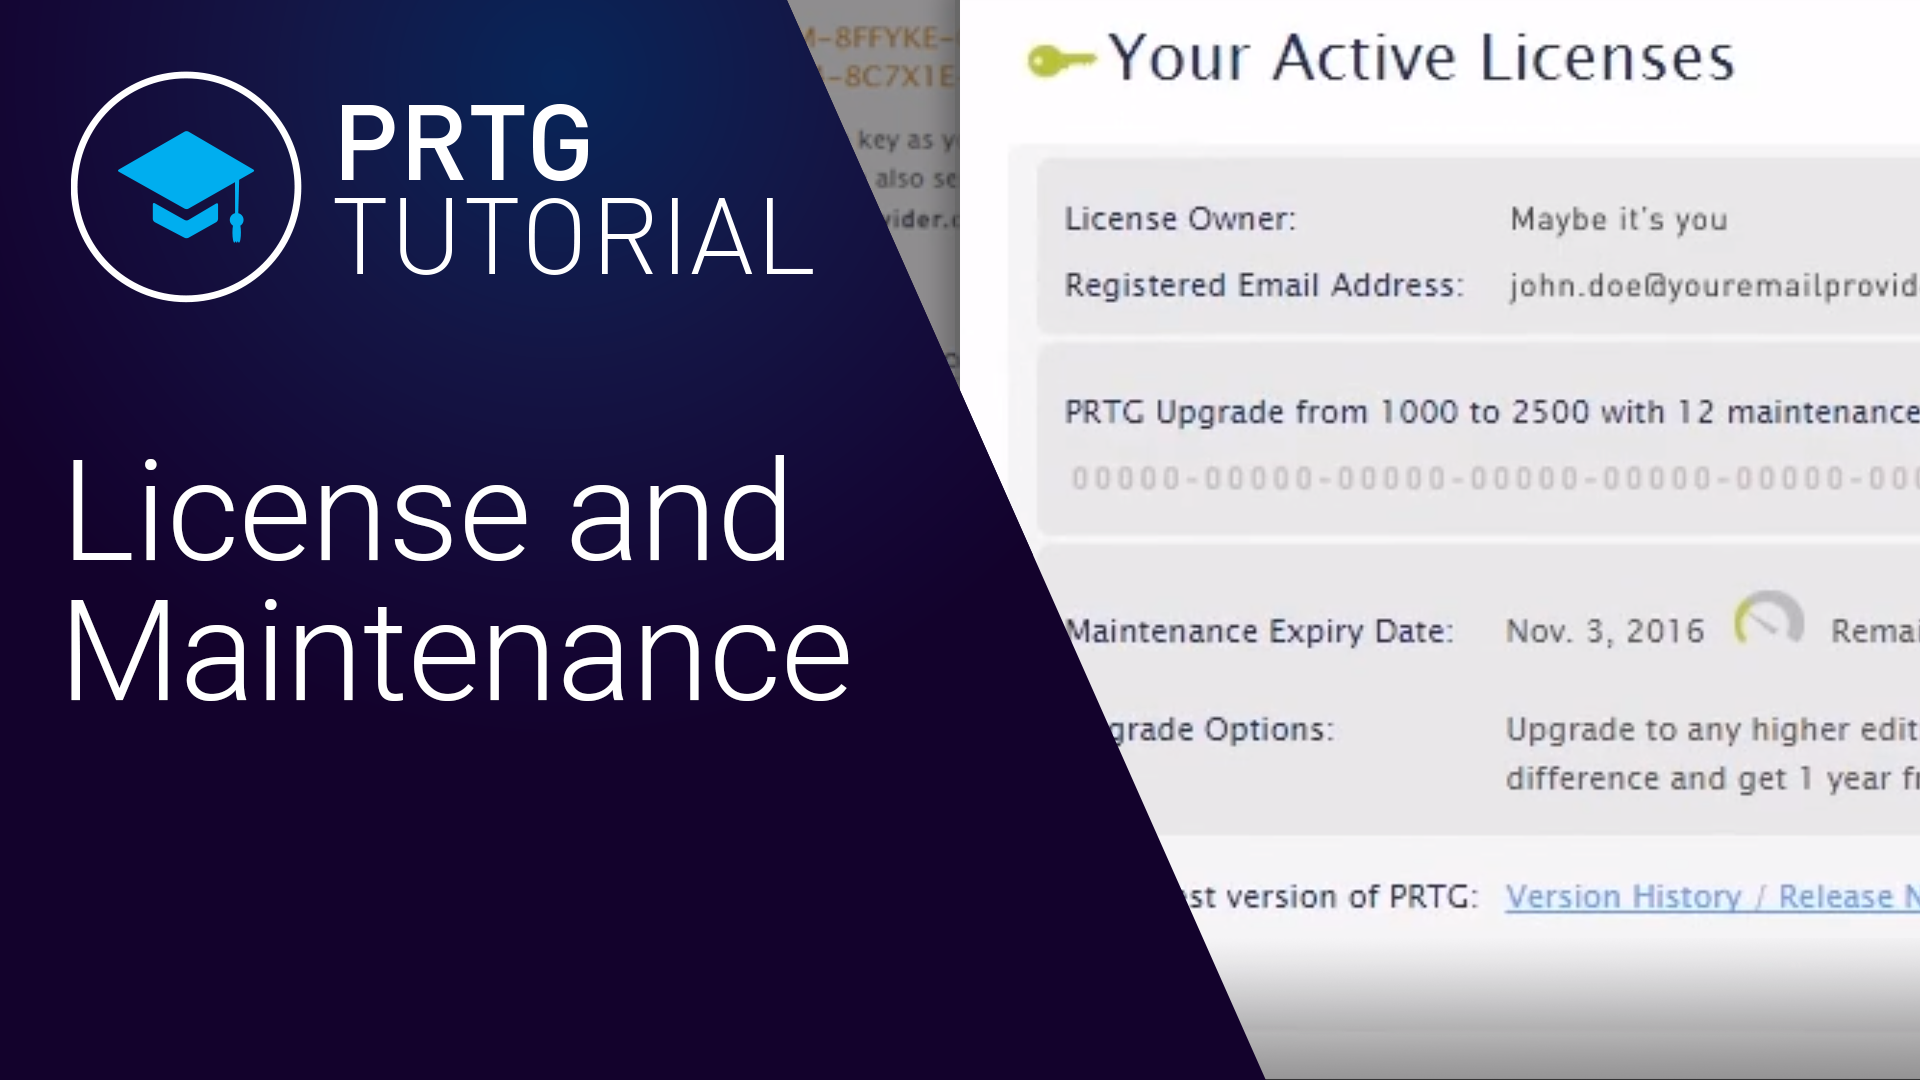 Video: PRTG - License and Maintenance (Videos, Overview)